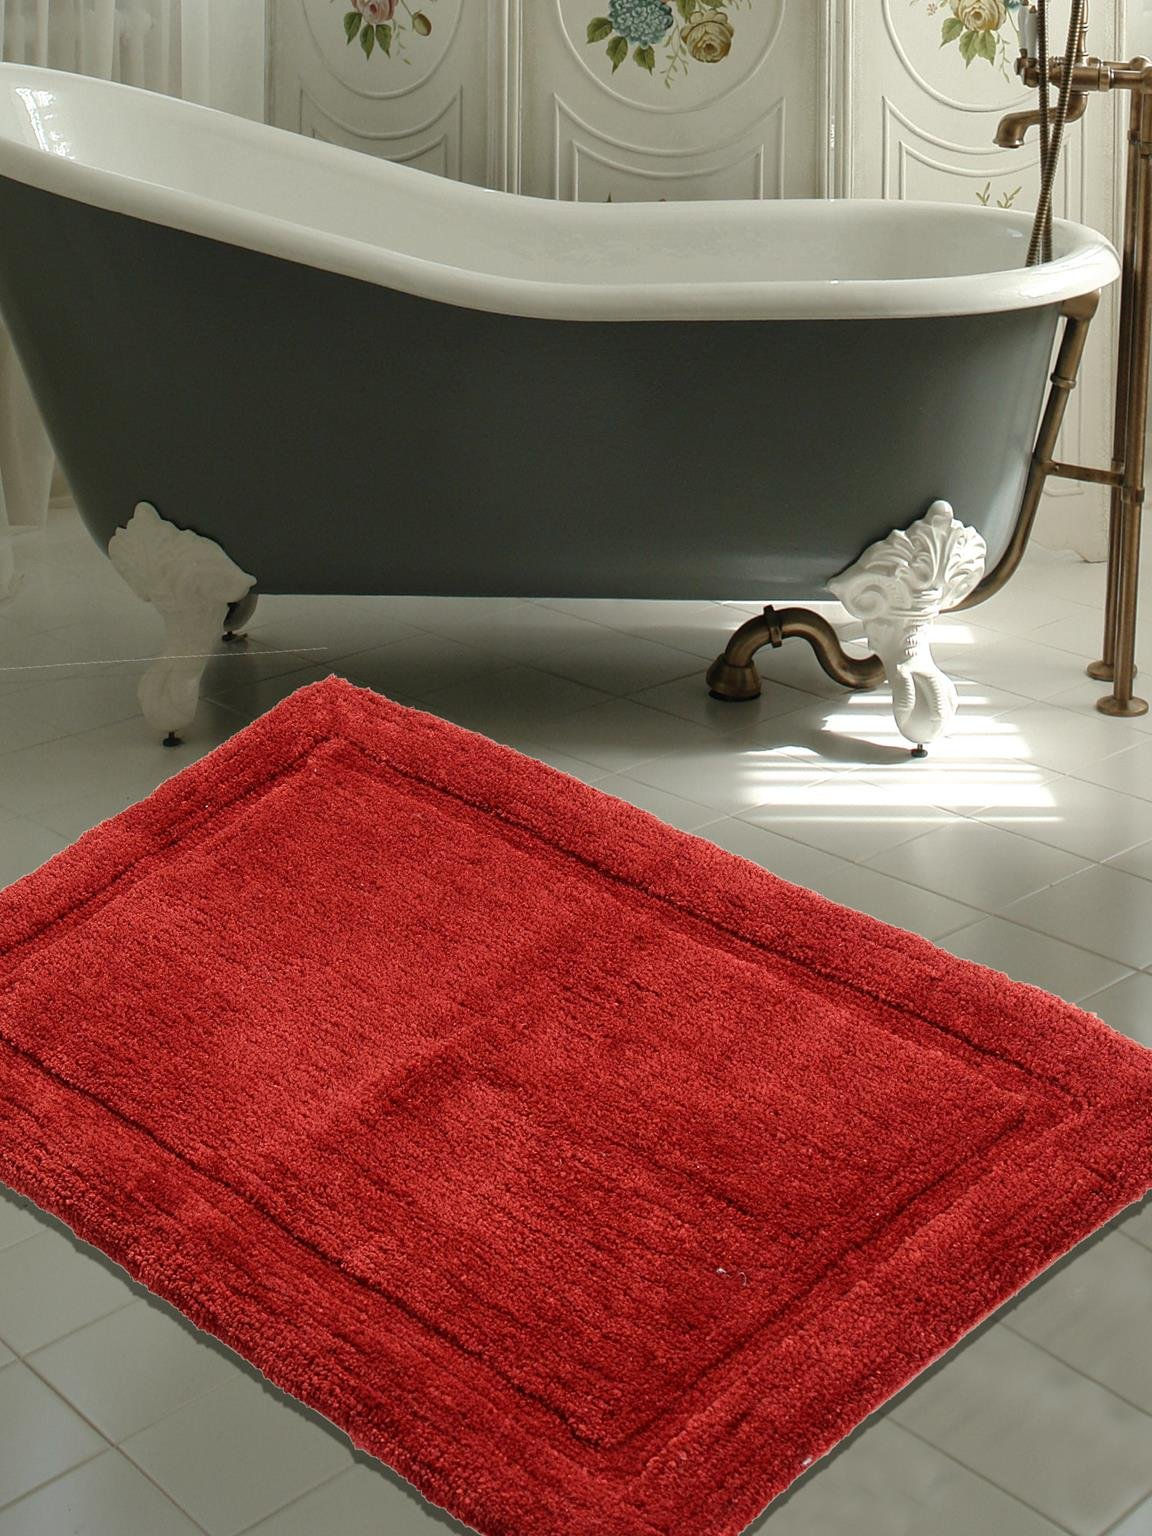 WARISI - Track Collection - Solids microfiber Bathroom, Bedroom Rug, 34 x 21 inches (Marsala) by WARISI (Image #1)